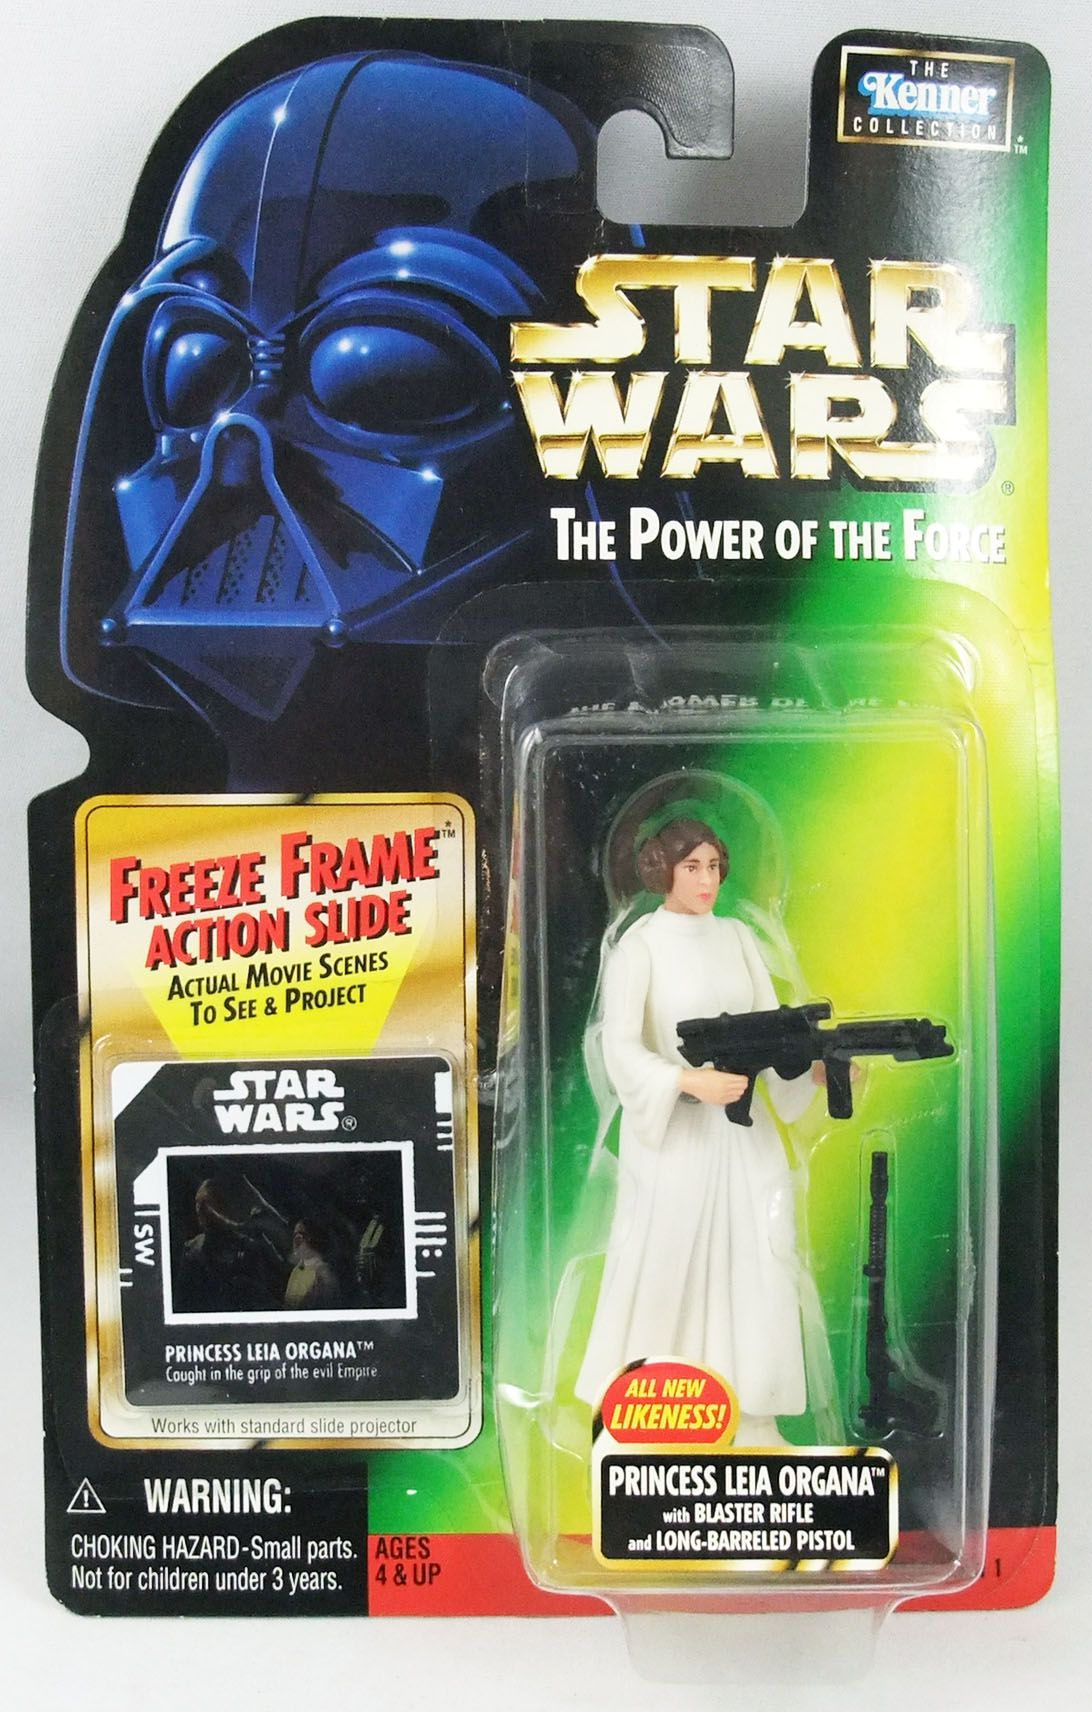 Star Wars (The Power of the Force) - Kenner - Princess Leia Organa (New Likeness)